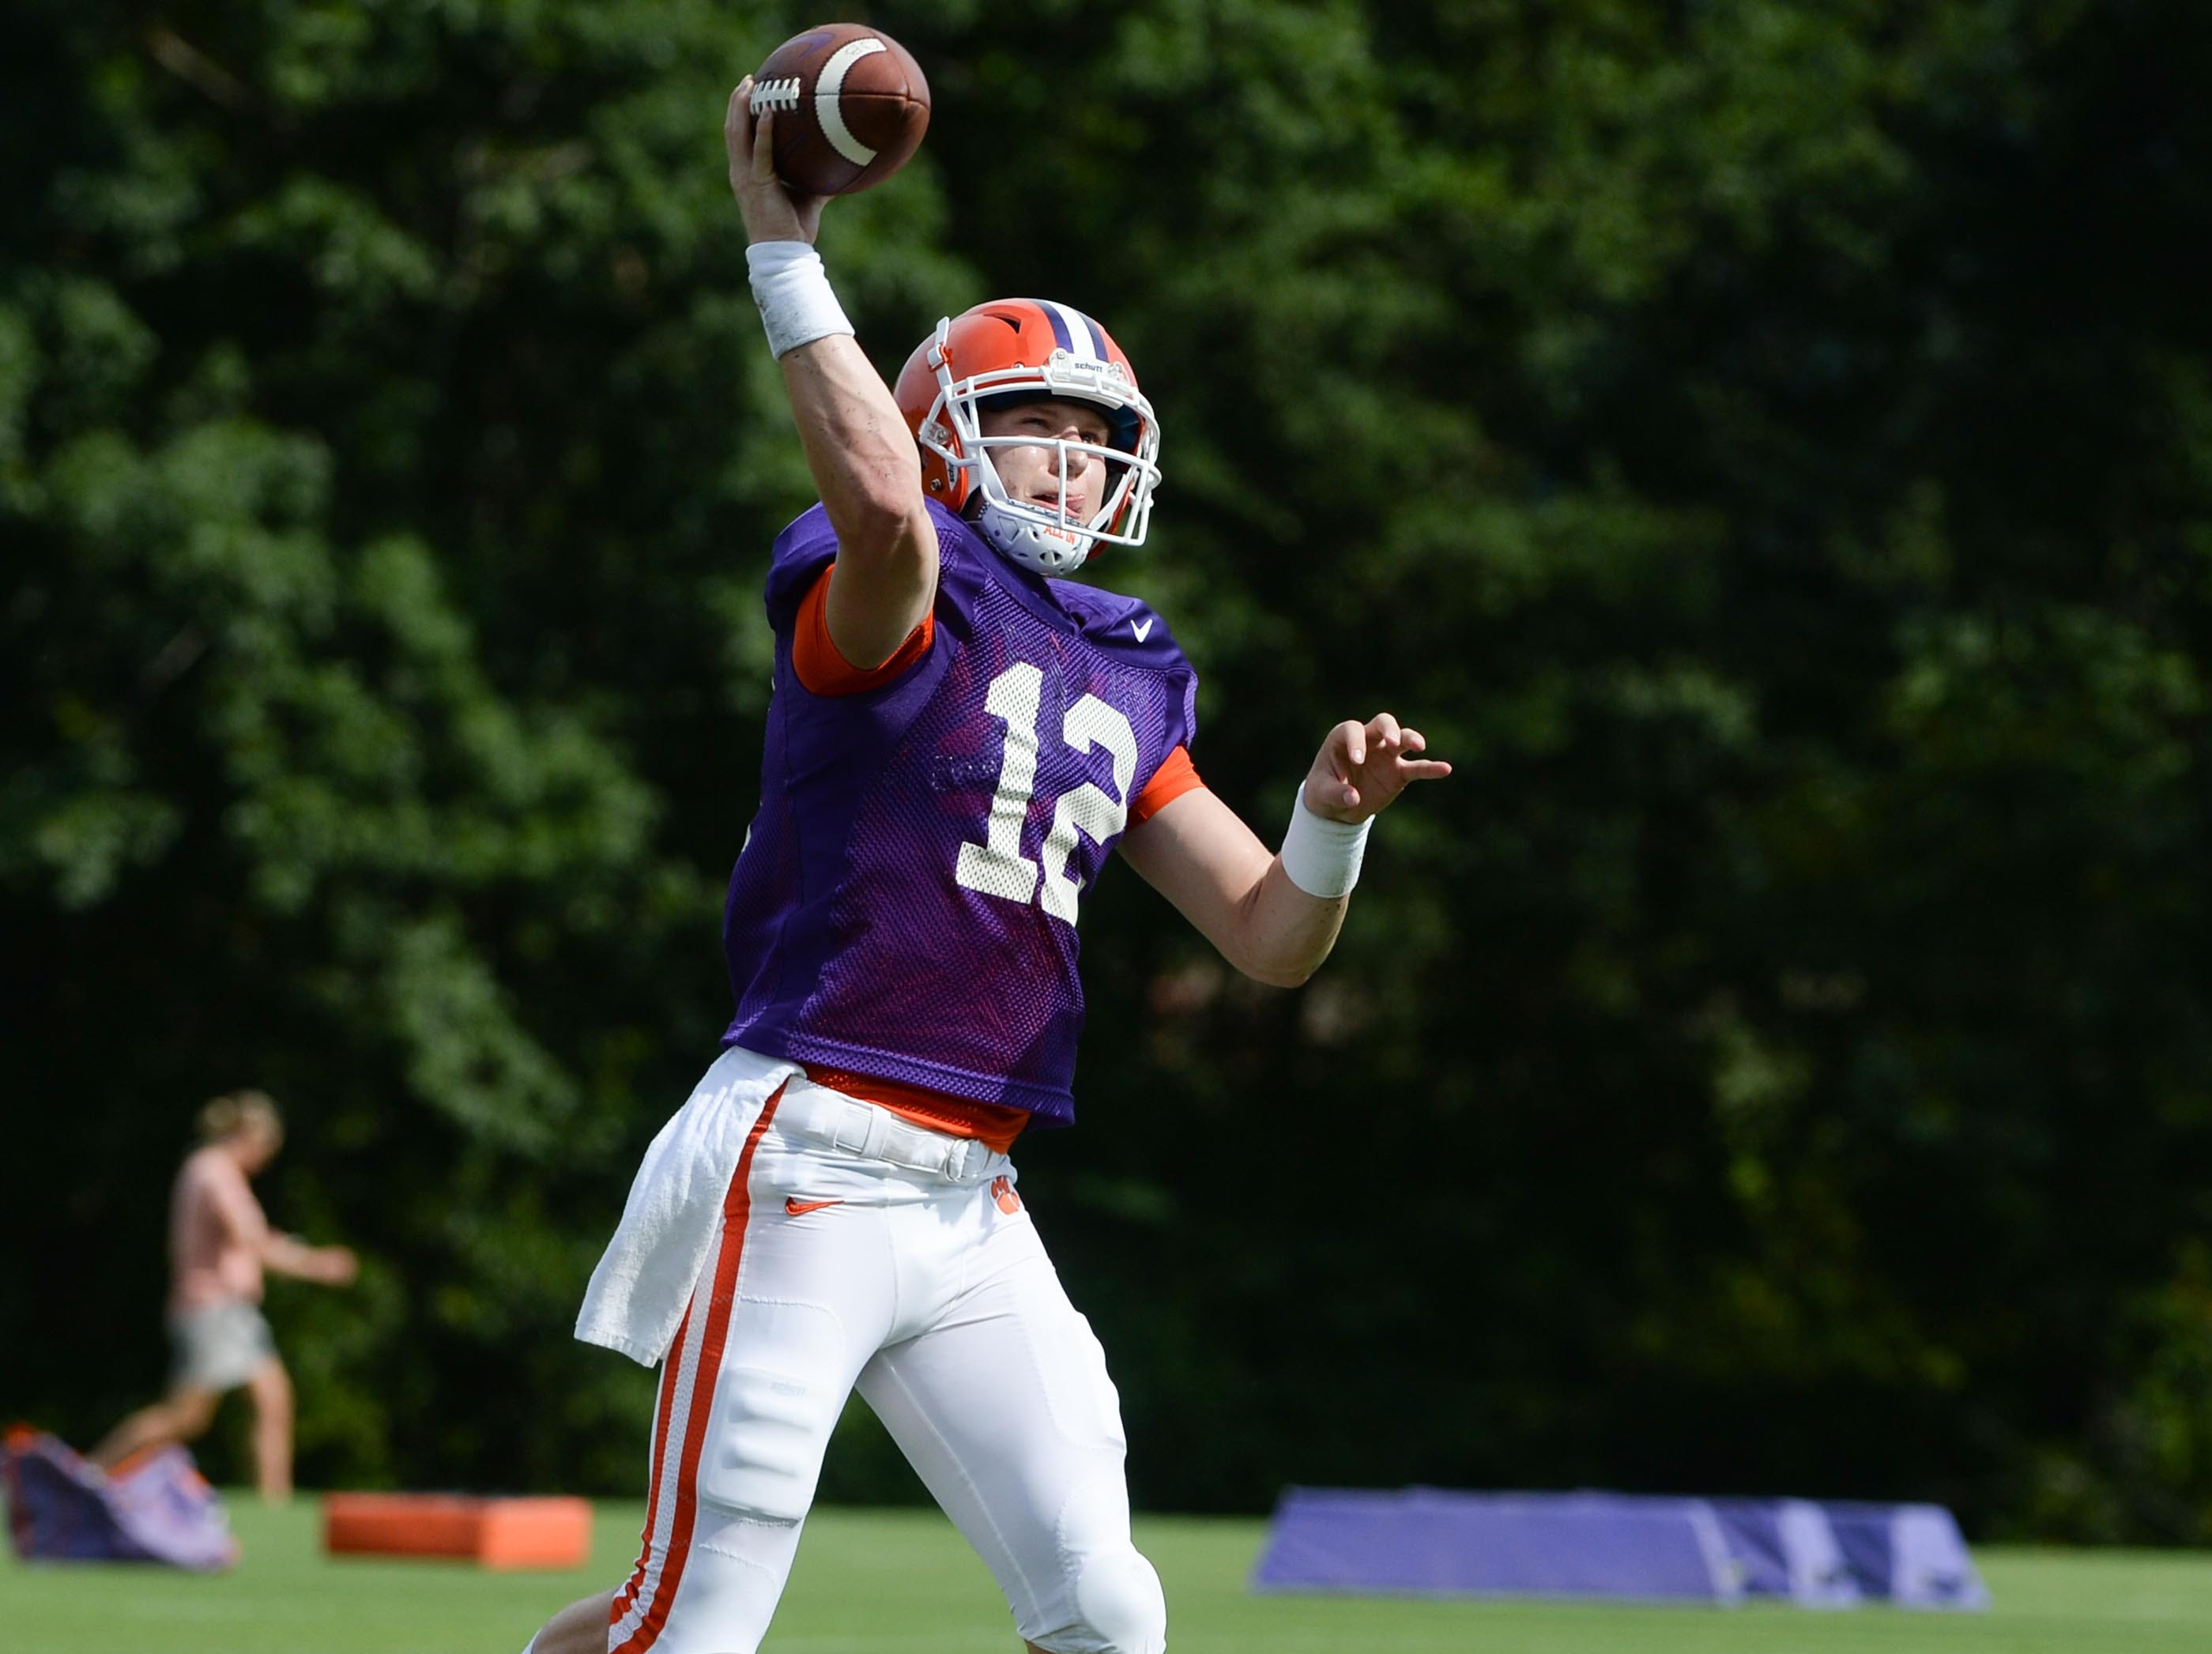 Clemson Ben Batson throws during fall practice in Clemson on Wednesday.